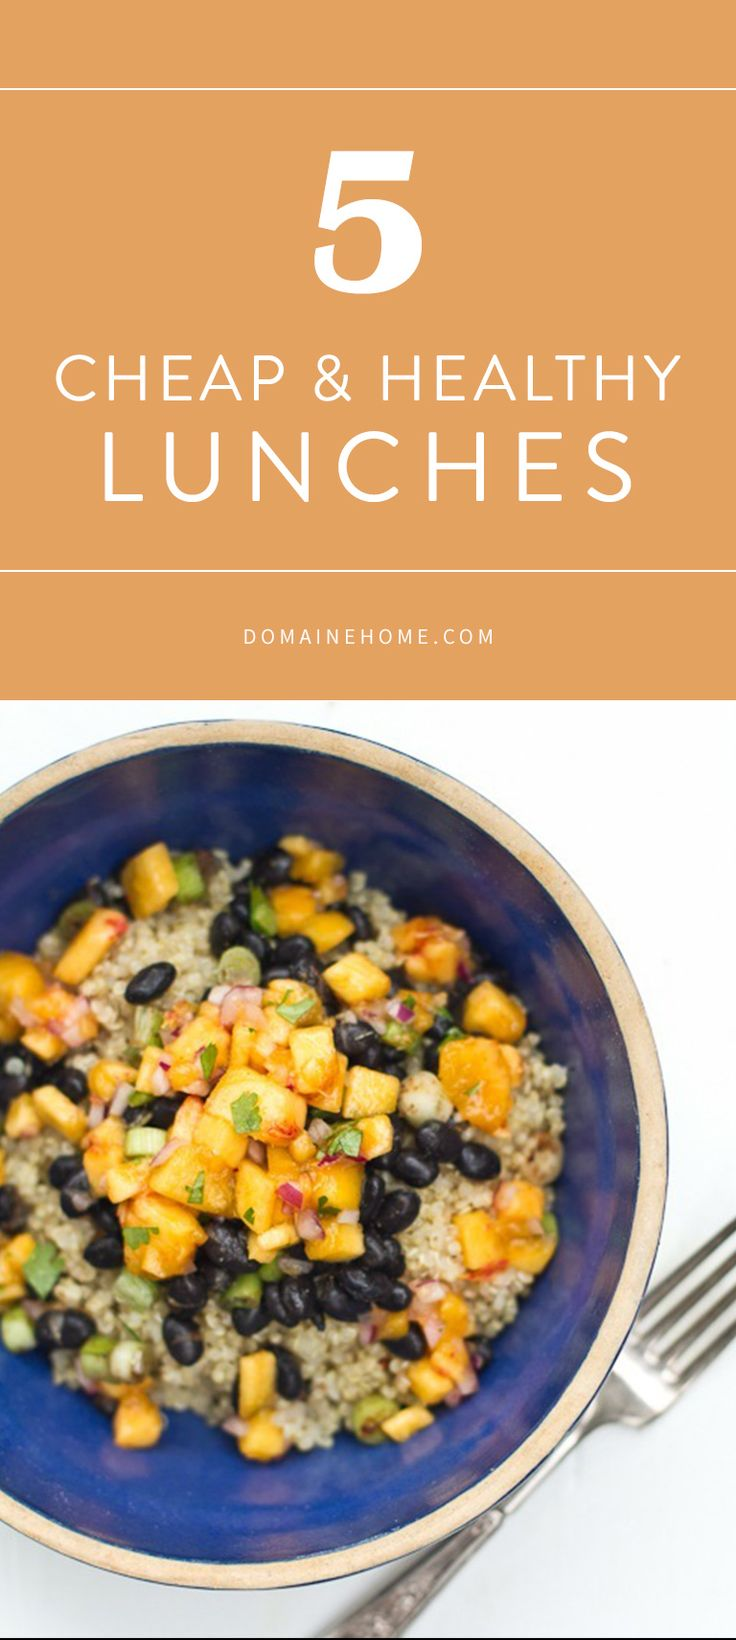 5 quick and calorie-conscious recipes for work-friendly lunches